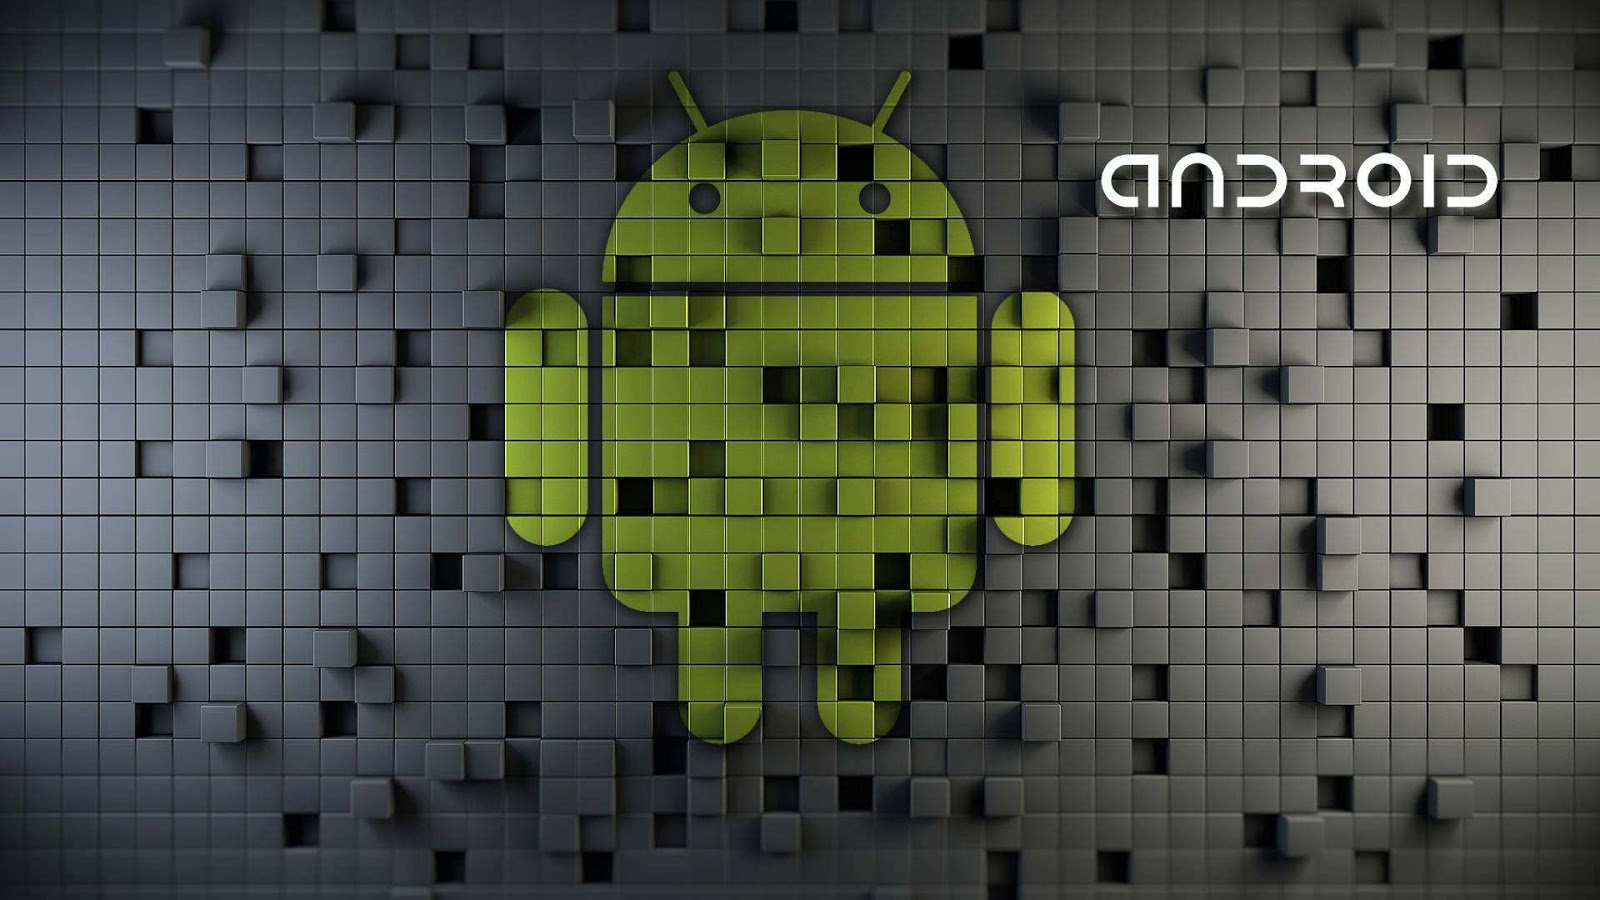 Android Logo and Text at Blocks Design